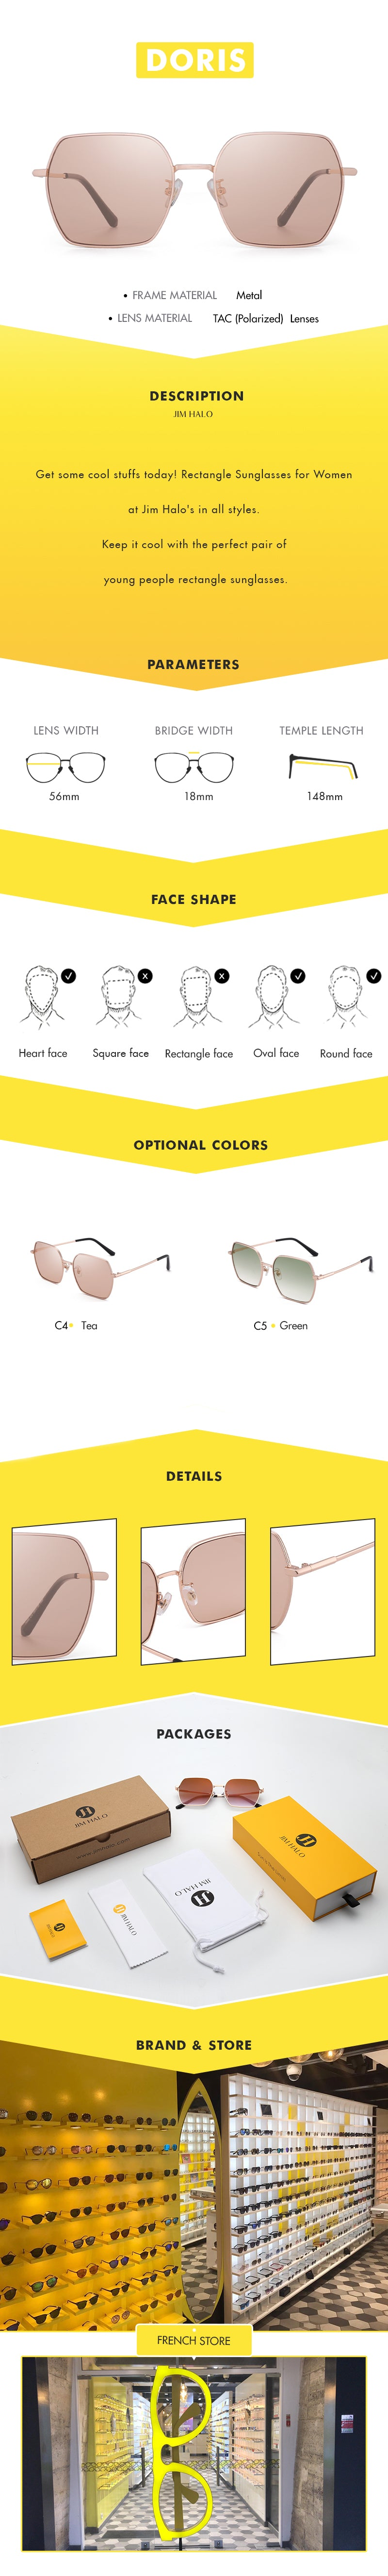 Get some cool stuffs today! Rectangle Sunglasses for Women at Jim Halo's in all styles.  Keep it cool with the perfect pair of young people rectangle sunglasses.